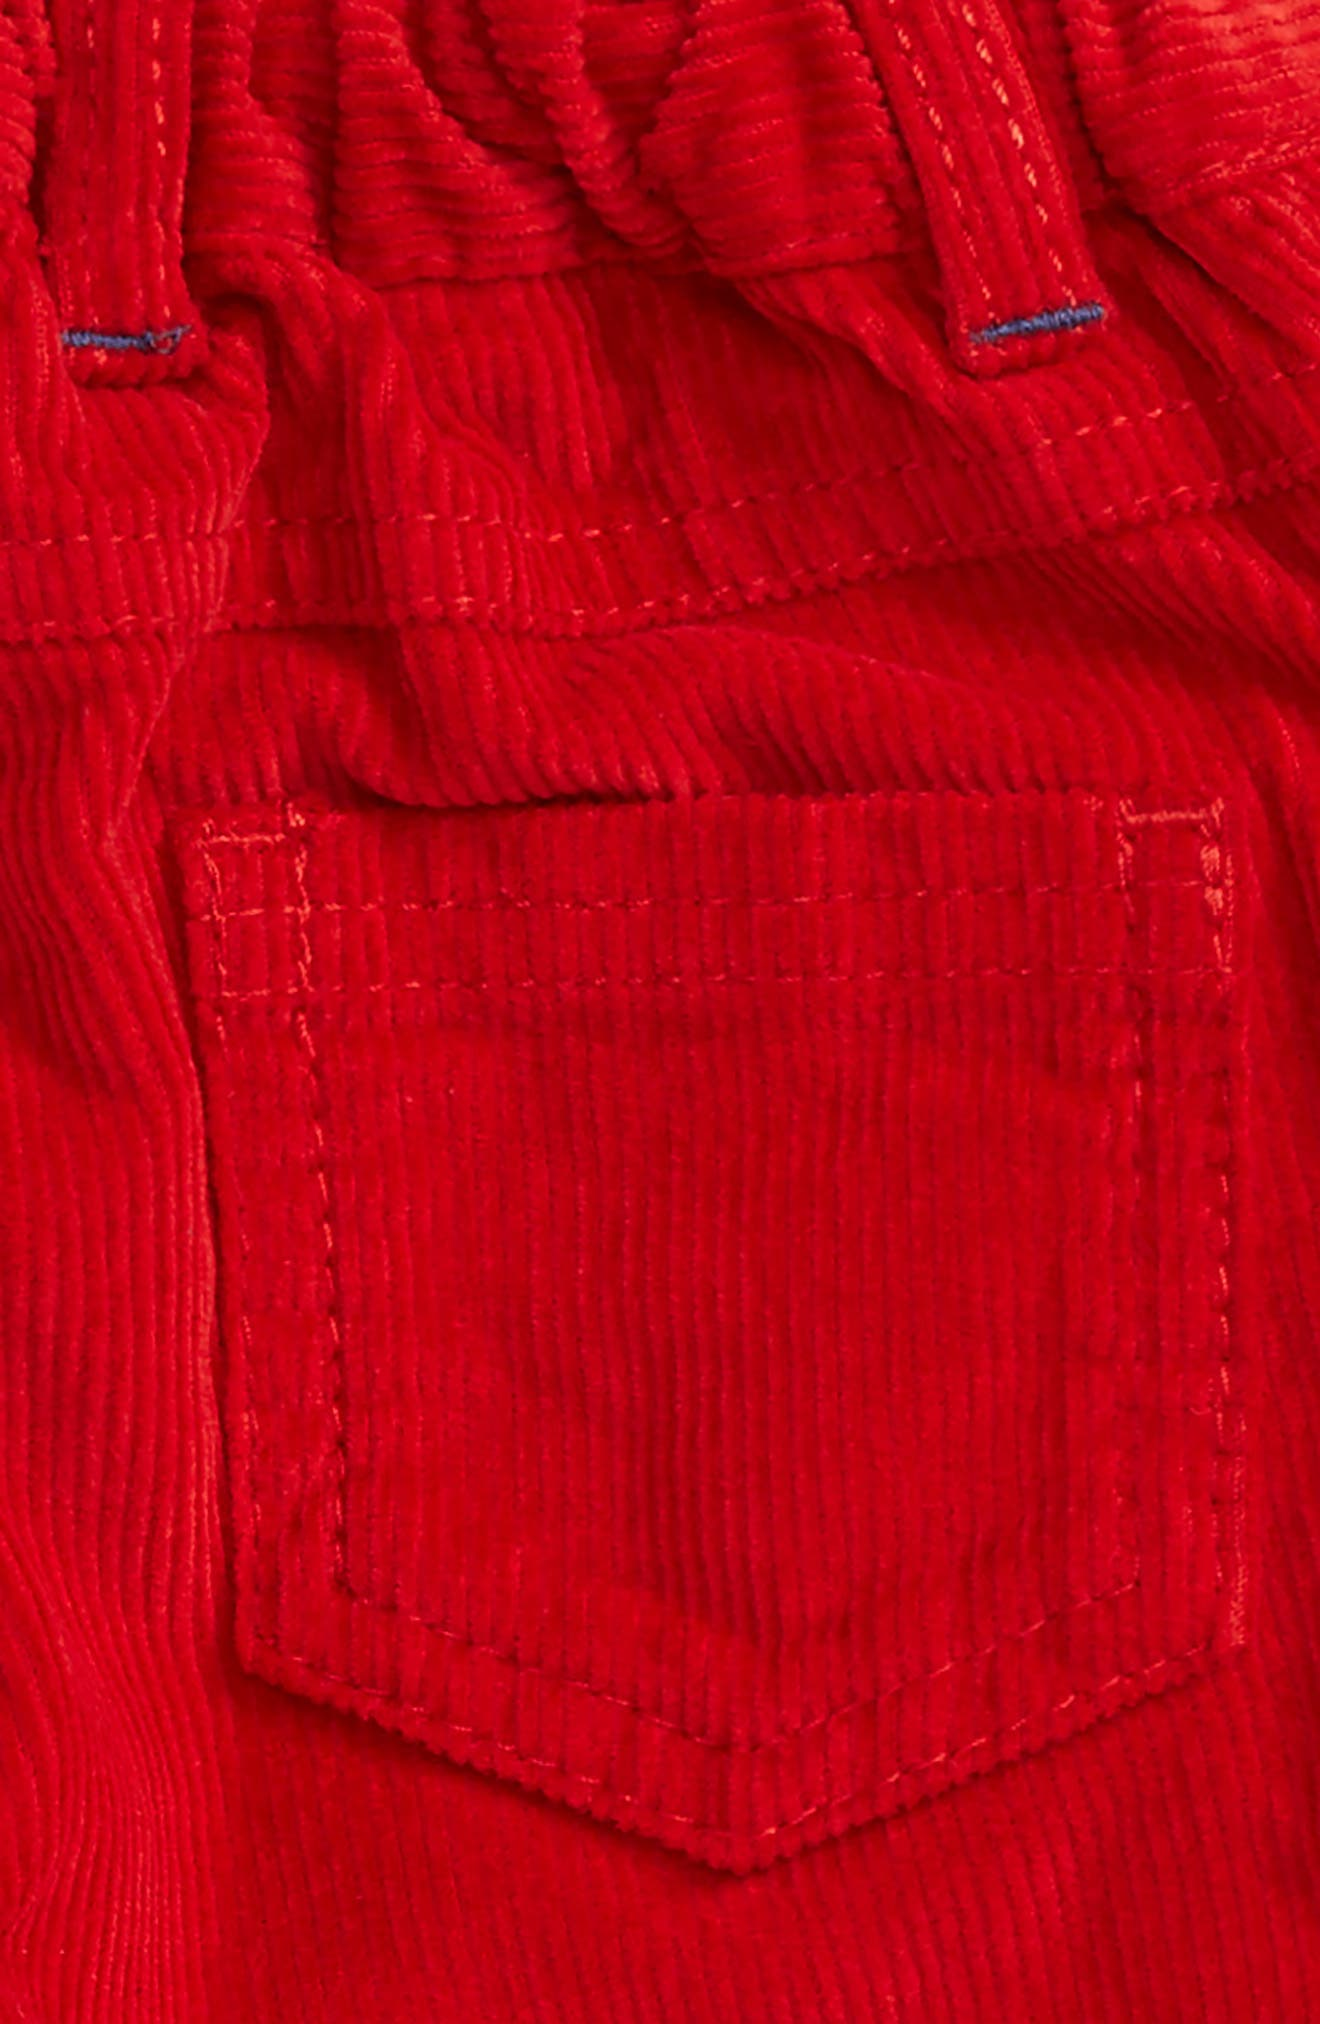 Lined Corduroy Pants,                             Alternate thumbnail 9, color,